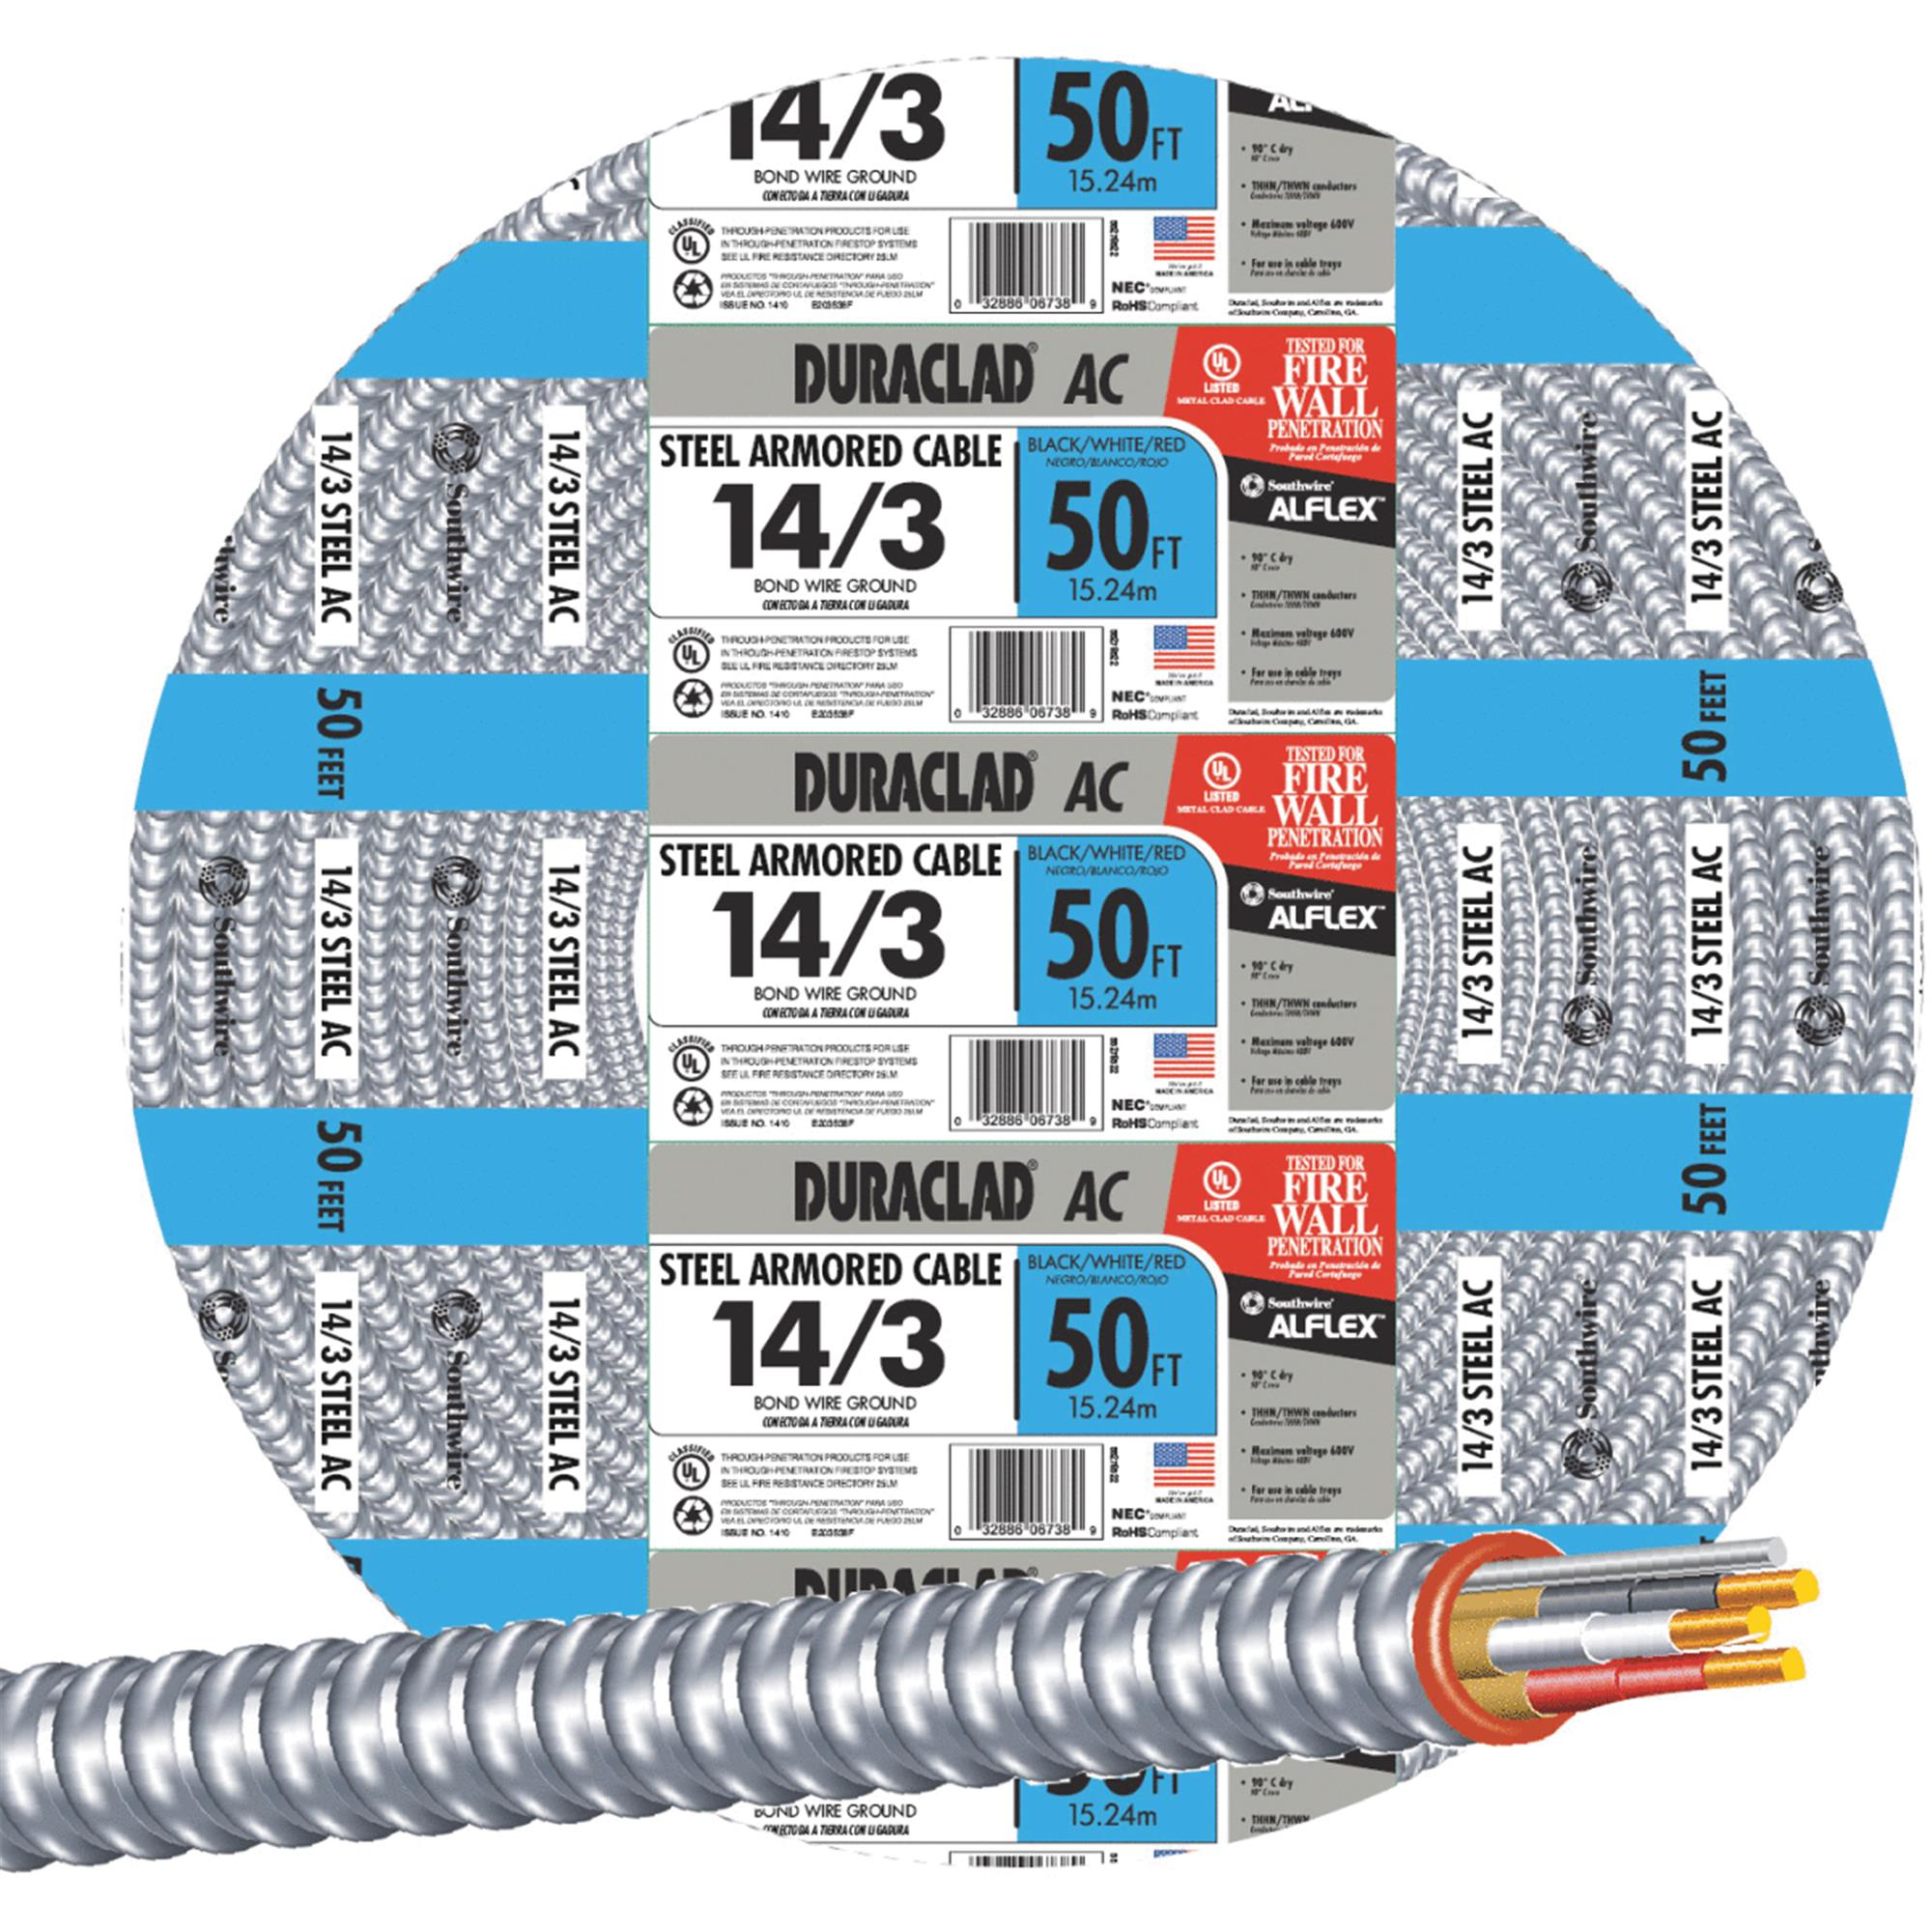 Southwire 14/3 Steel Armored Cable